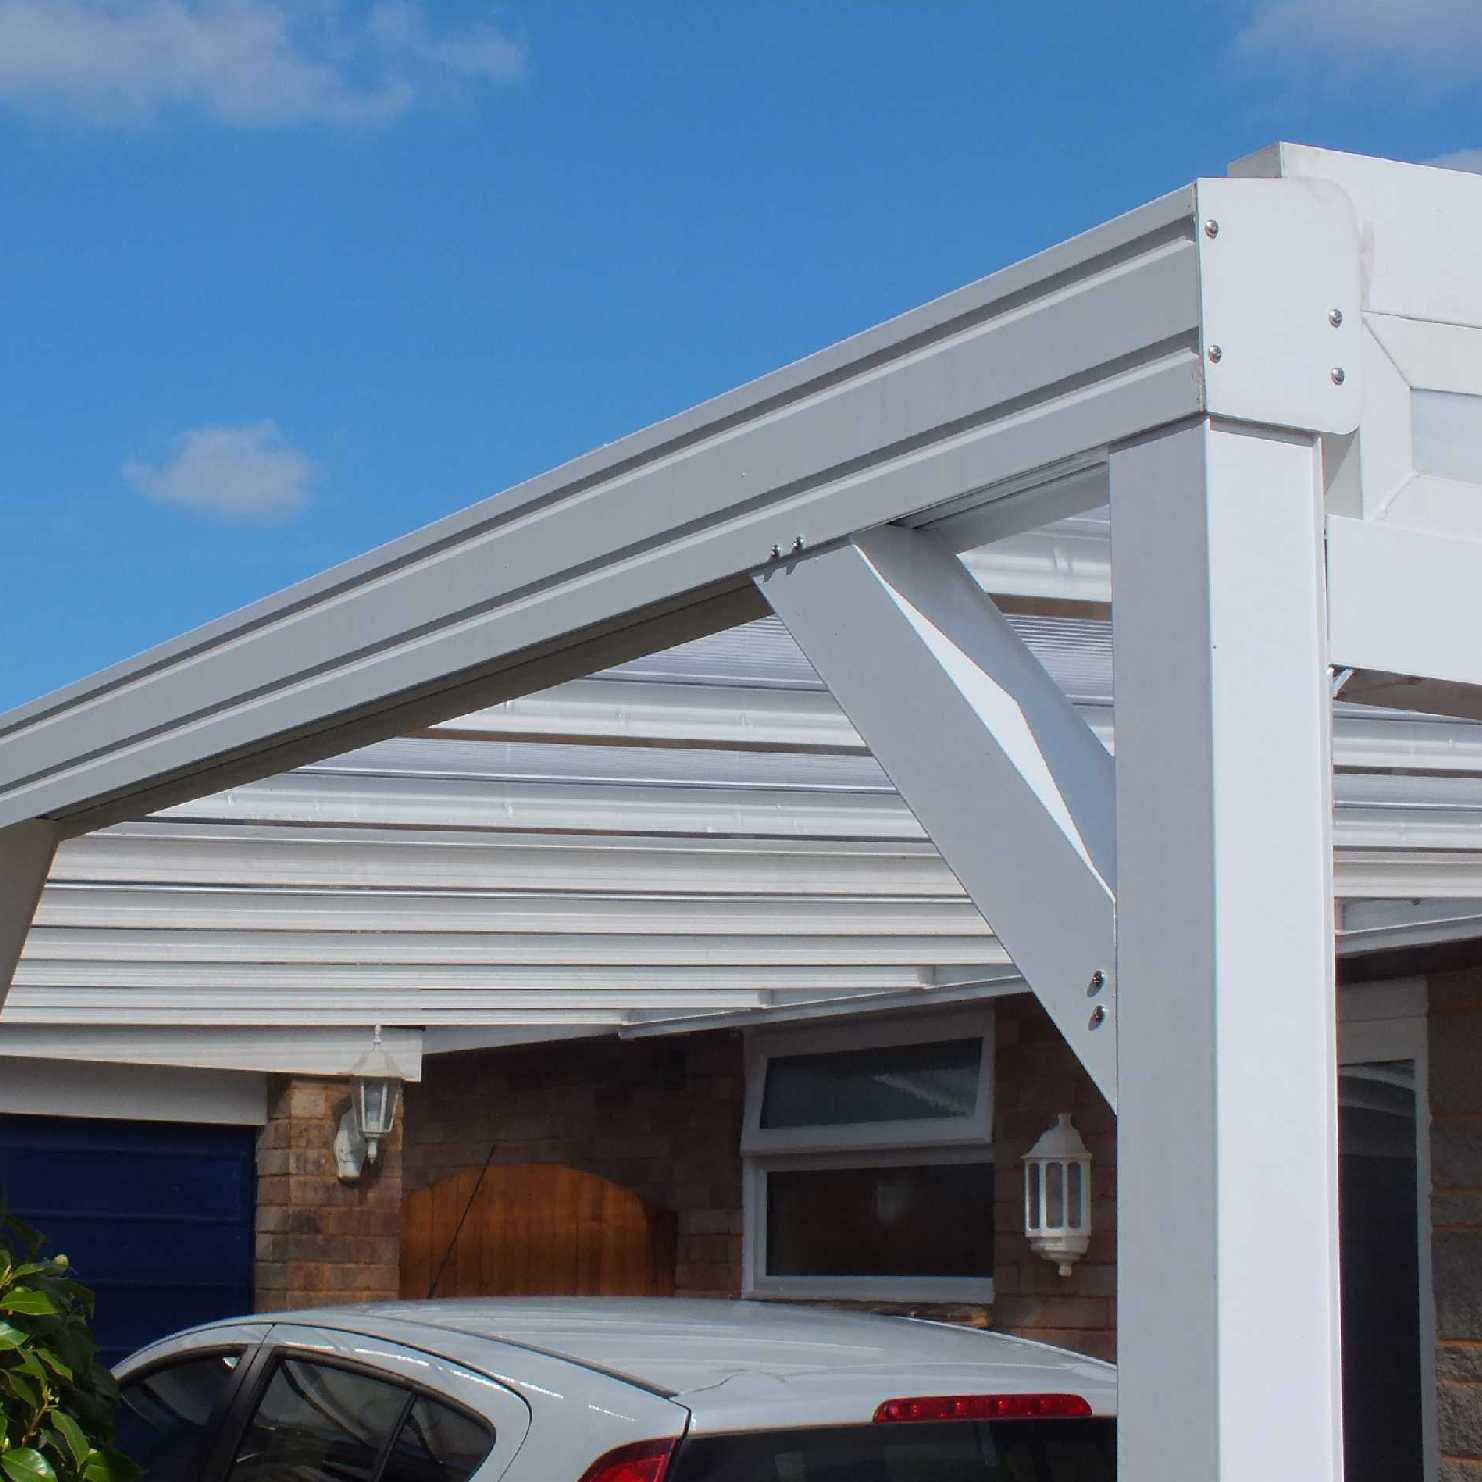 Great deals on Omega Smart White Lean-To Canopy with 16mm Polycarbonate Glazing - 4.8m (W) x 4.5m (P), (3) Supporting Posts